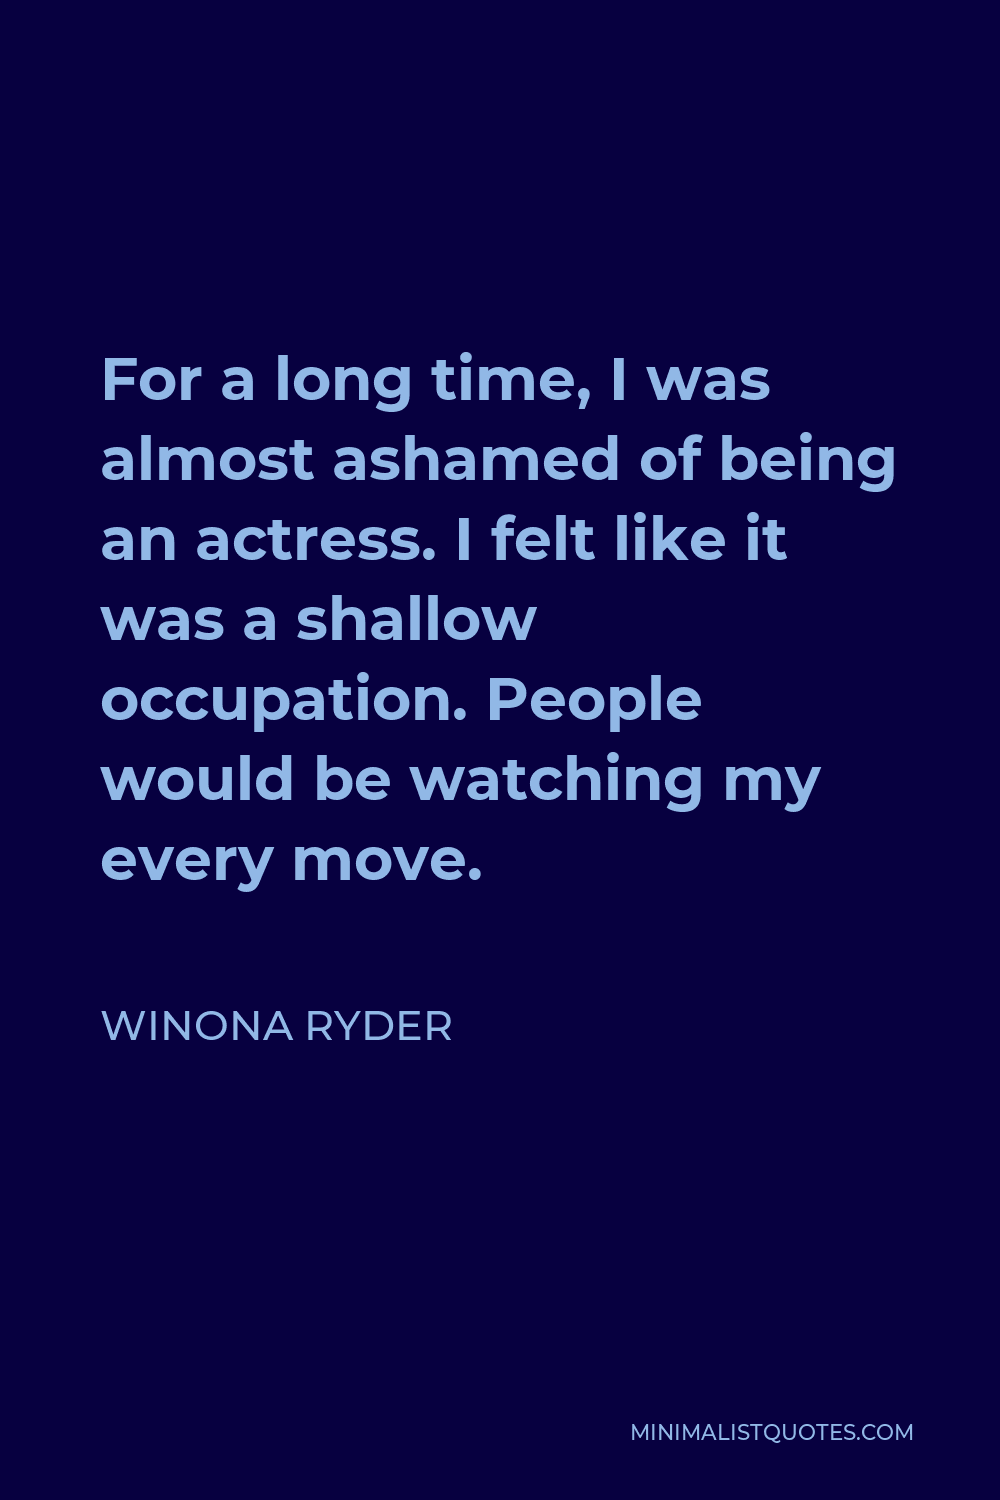 Winona Ryder Quote - For a long time, I was almost ashamed of being an actress. I felt like it was a shallow occupation. People would be watching my every move.